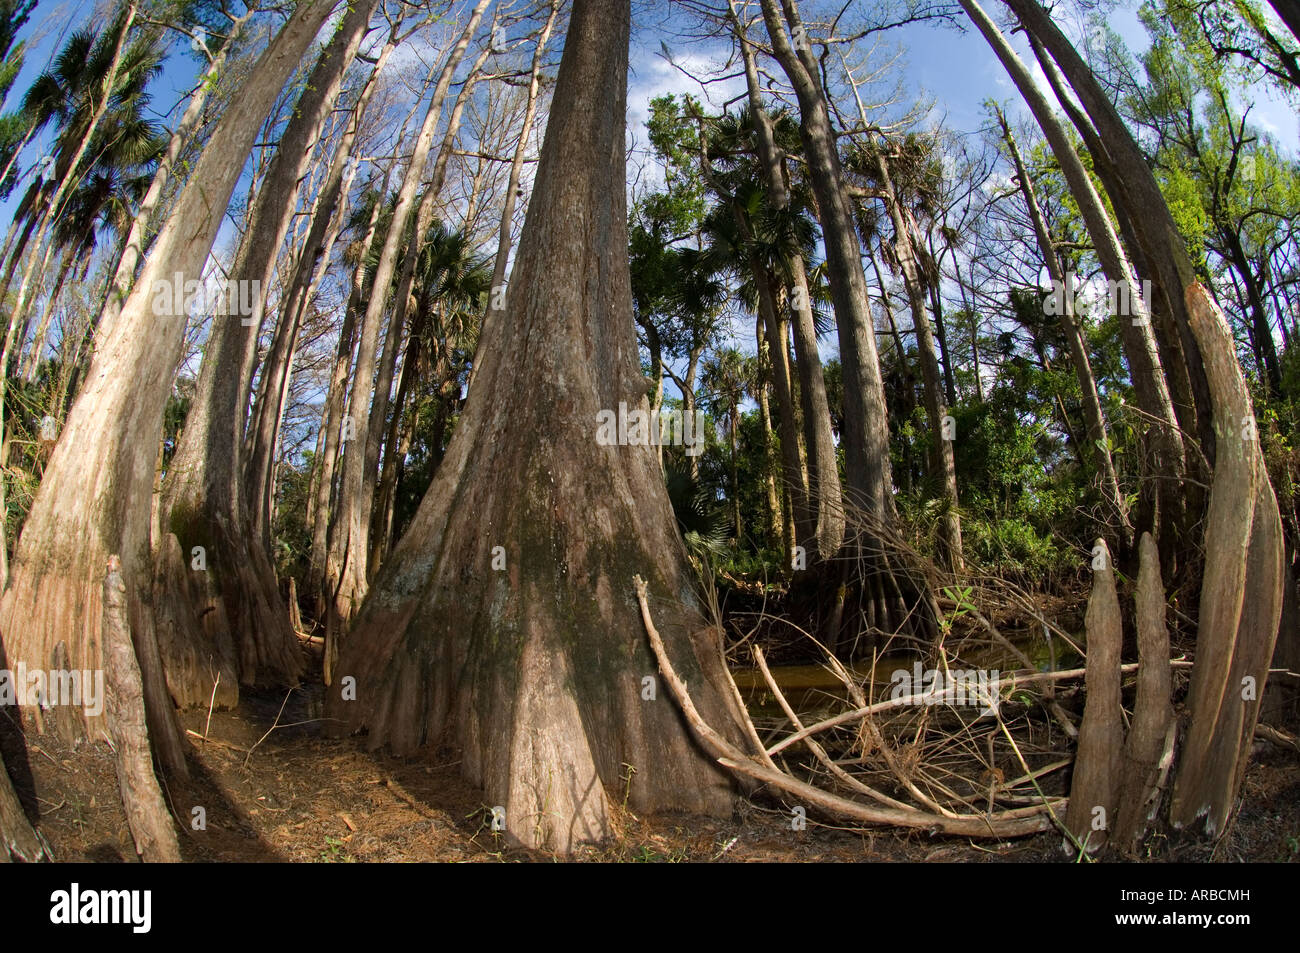 Bald Cypress Taxodium distichum along the banks of the Loxahatchee River in northern Palm Beach County FL - Stock Image